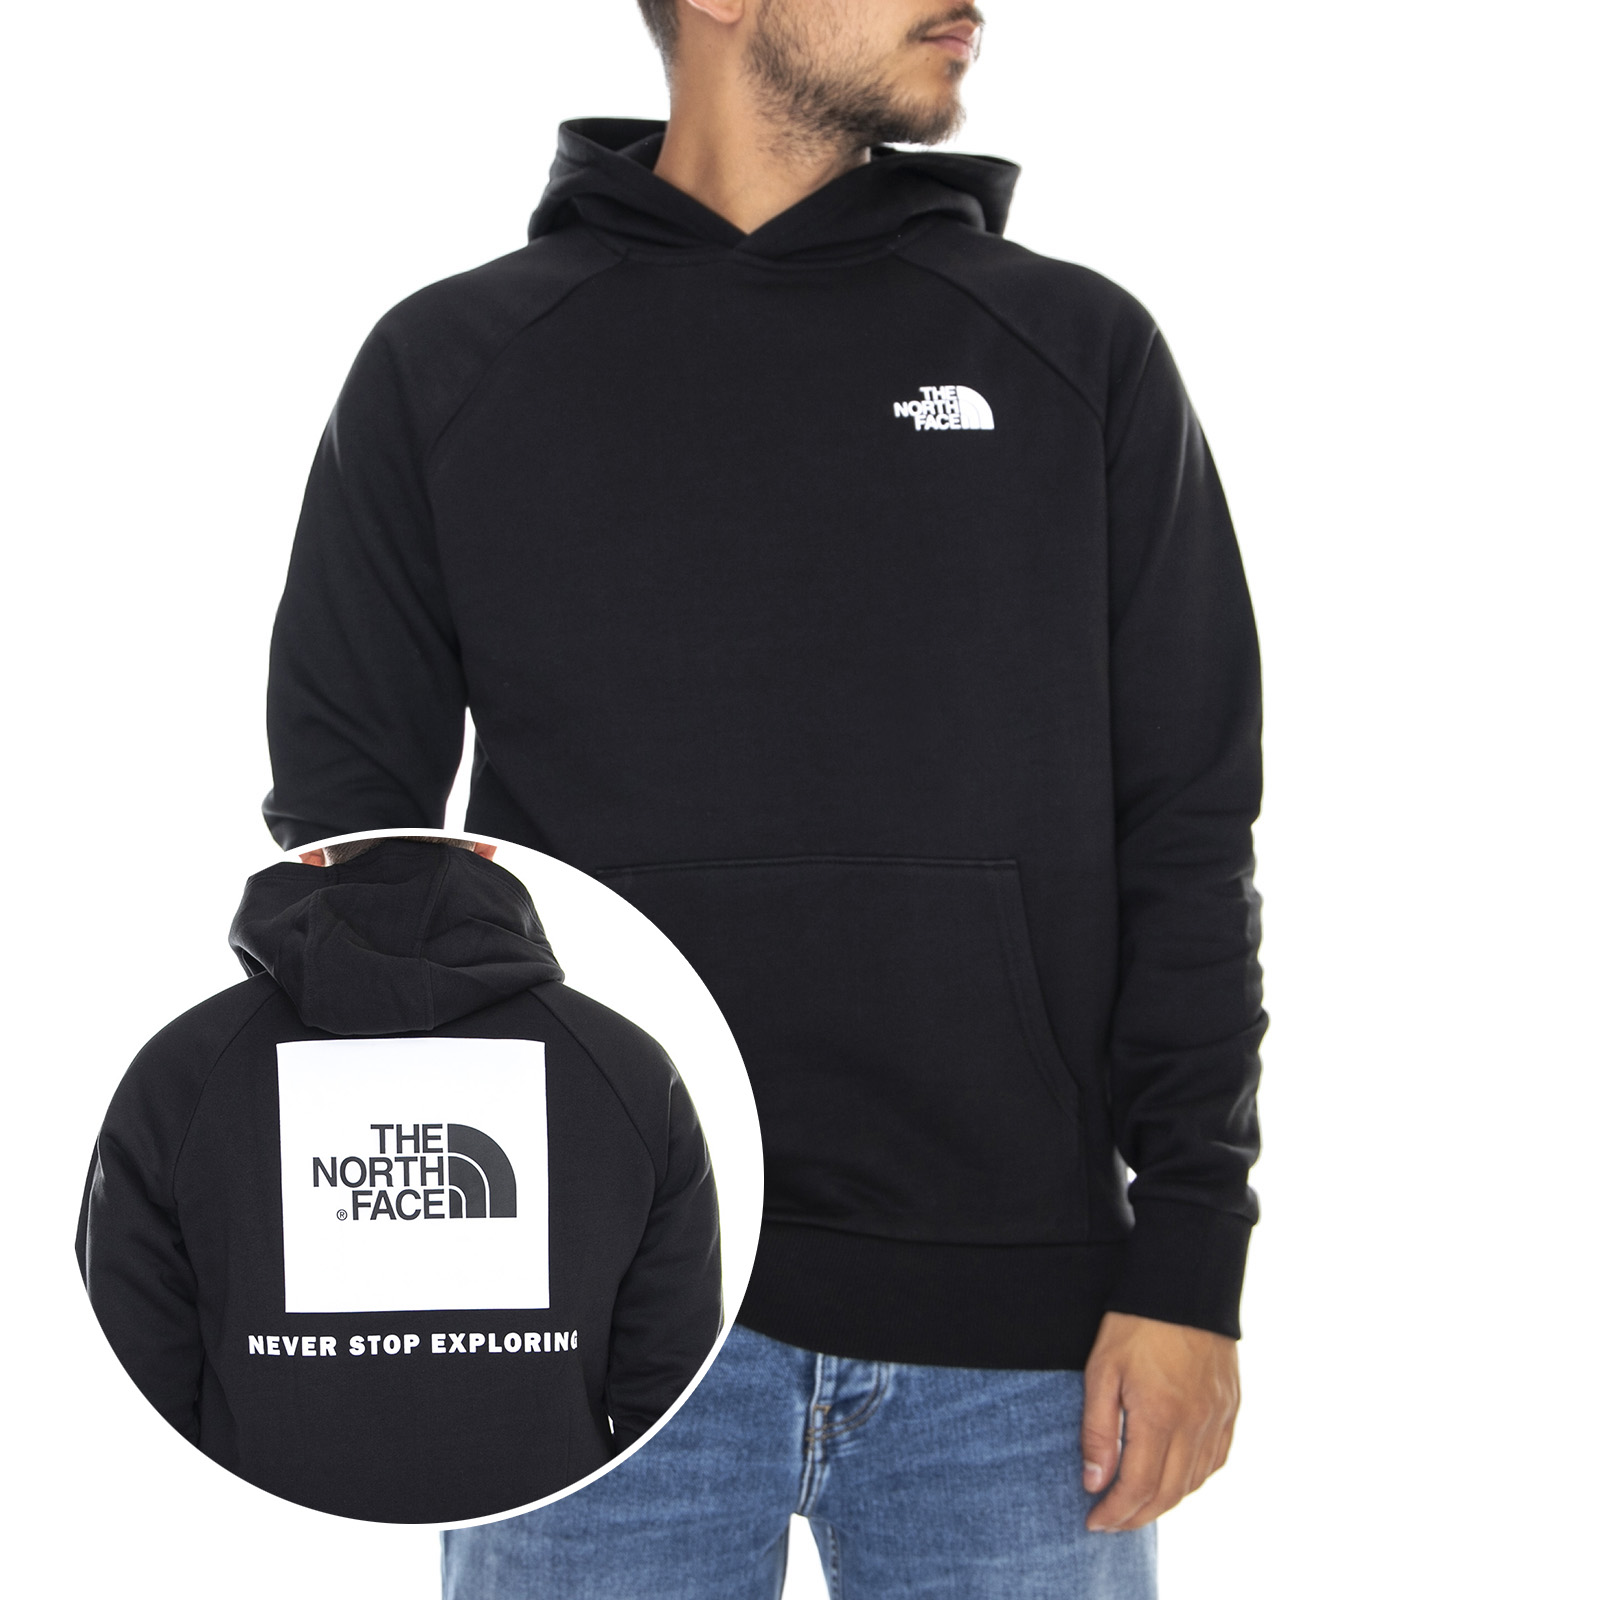 Felpa con cappuccio uomo The North Face nero